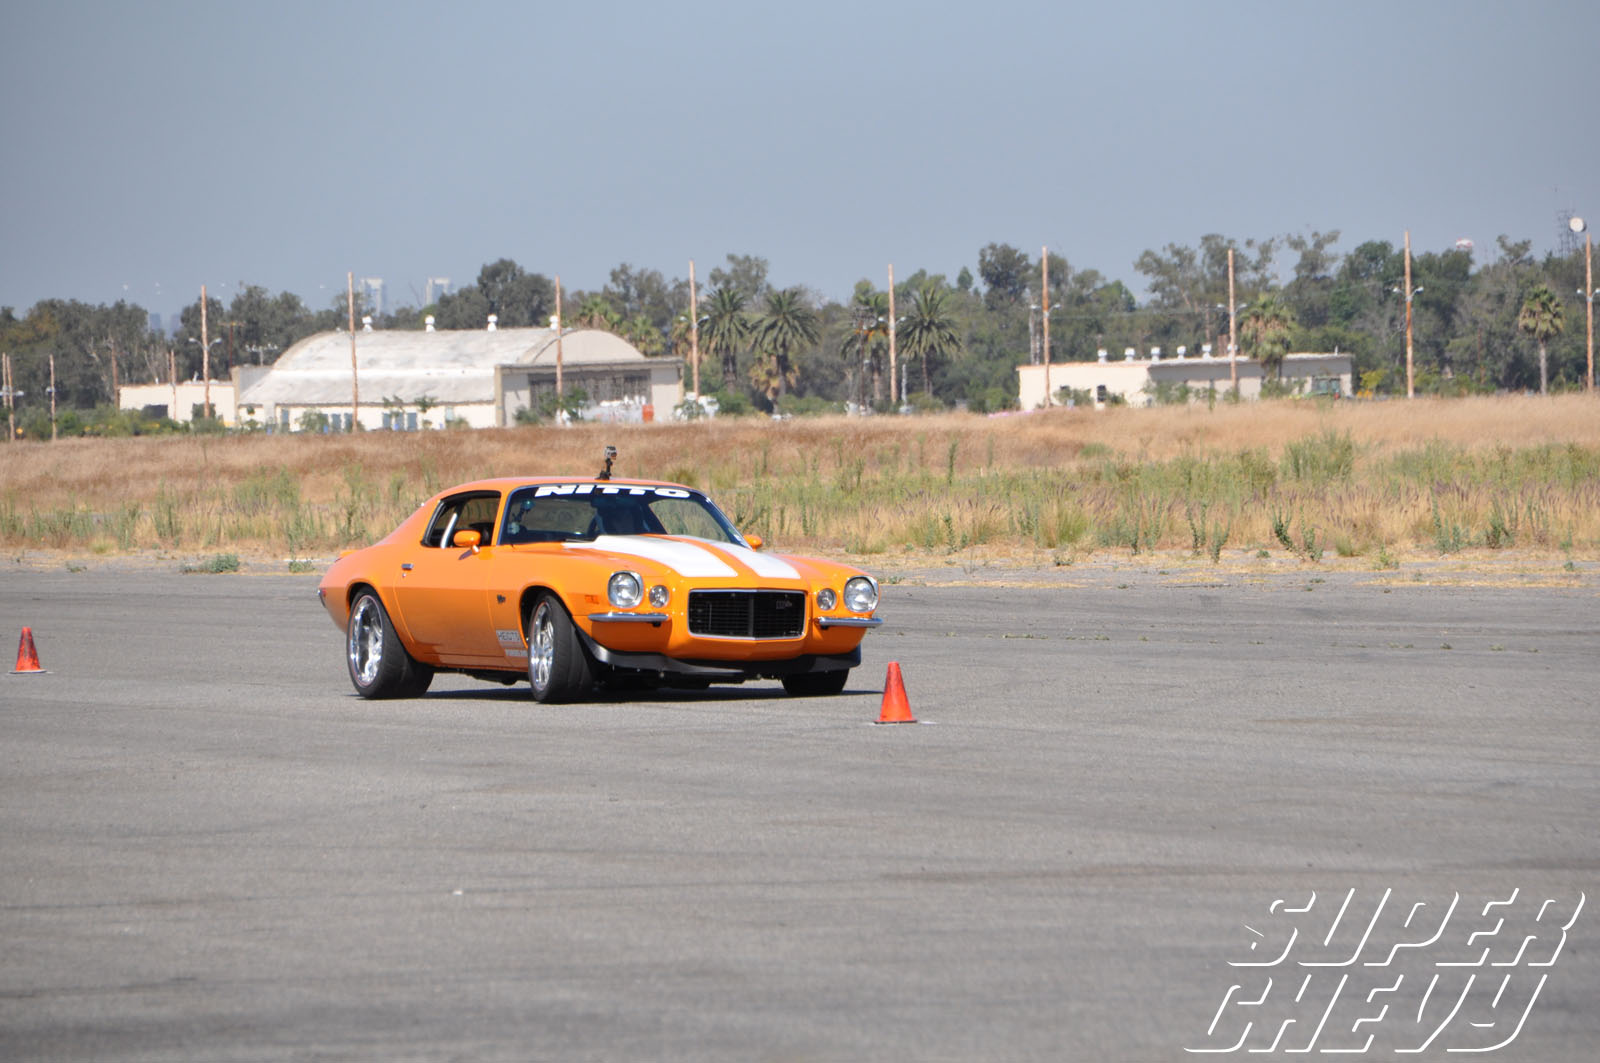 Sucp_1009_041_o 2010_super_chevy_suspension_and_handling challenge Event